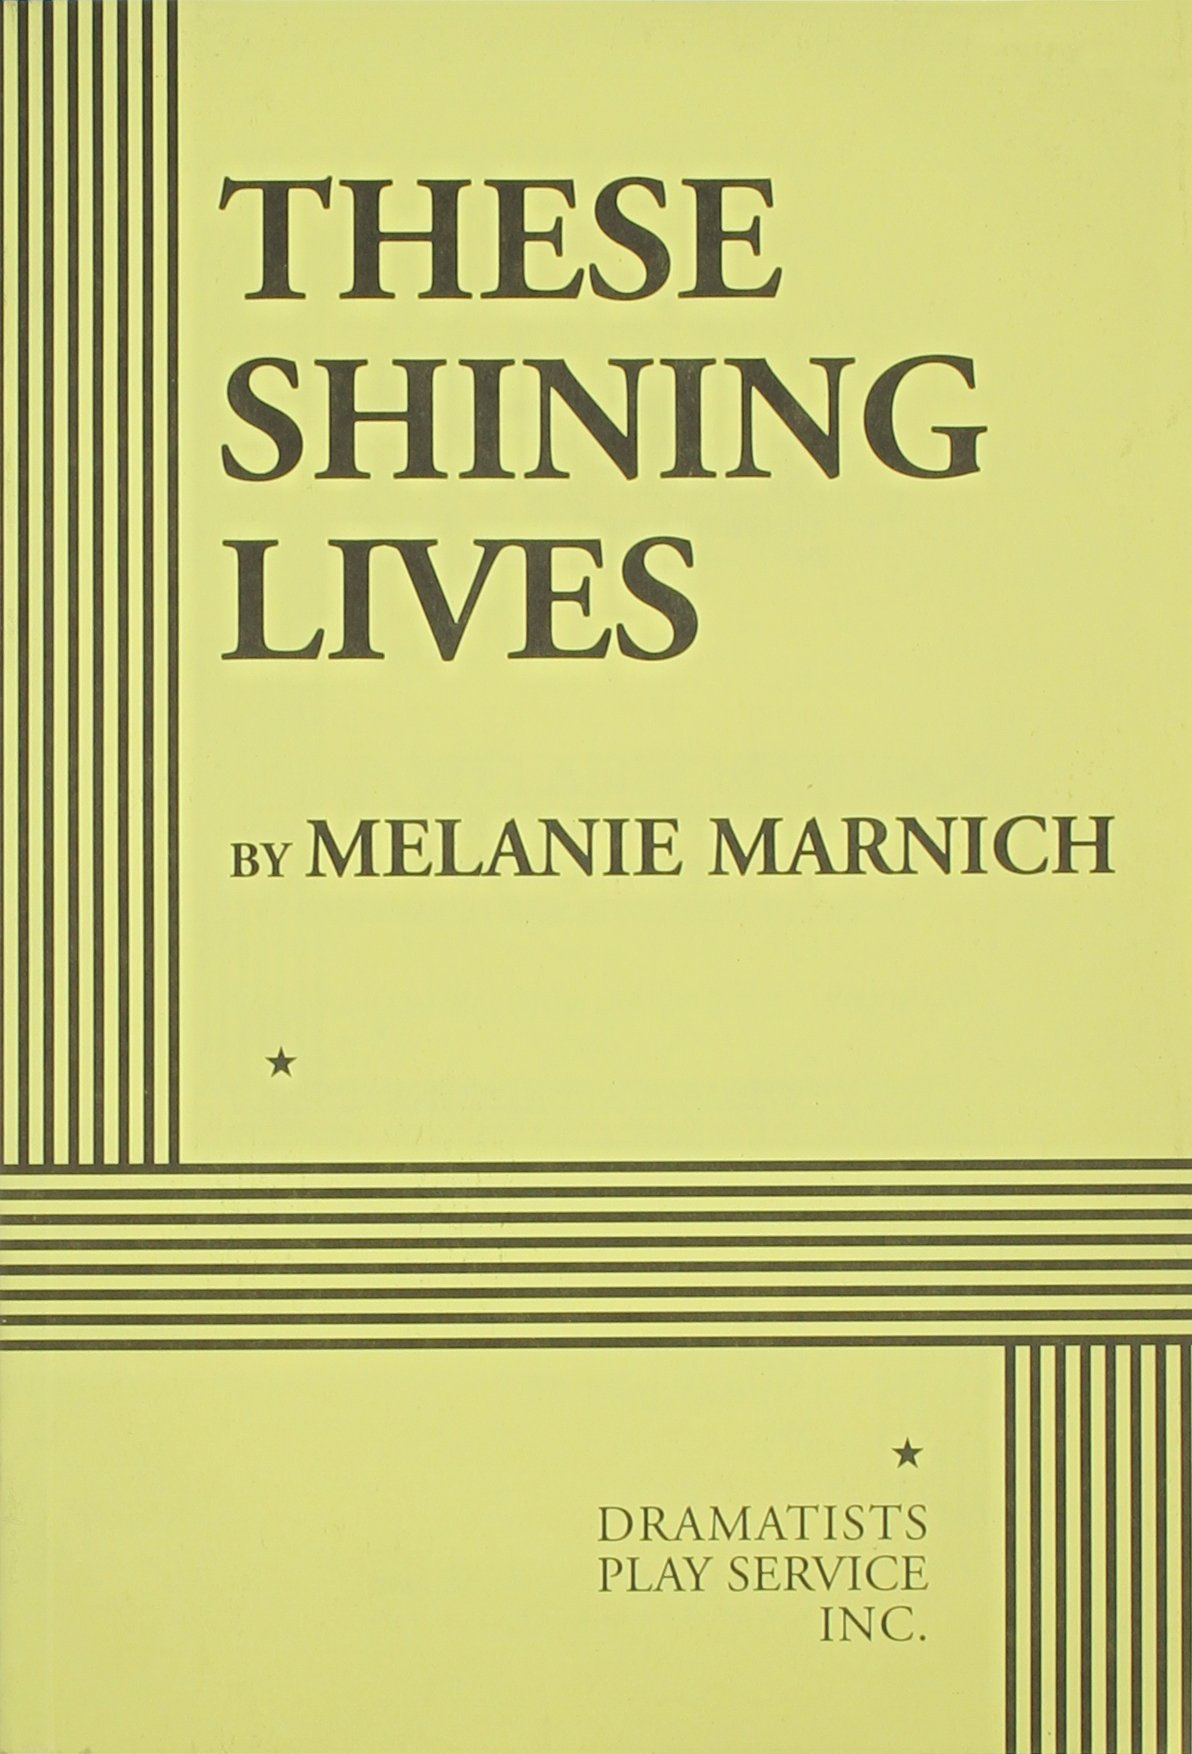 These shining lives acting edition melanie marnich 9780822224488 these shining lives acting edition melanie marnich 9780822224488 amazon books fandeluxe Image collections